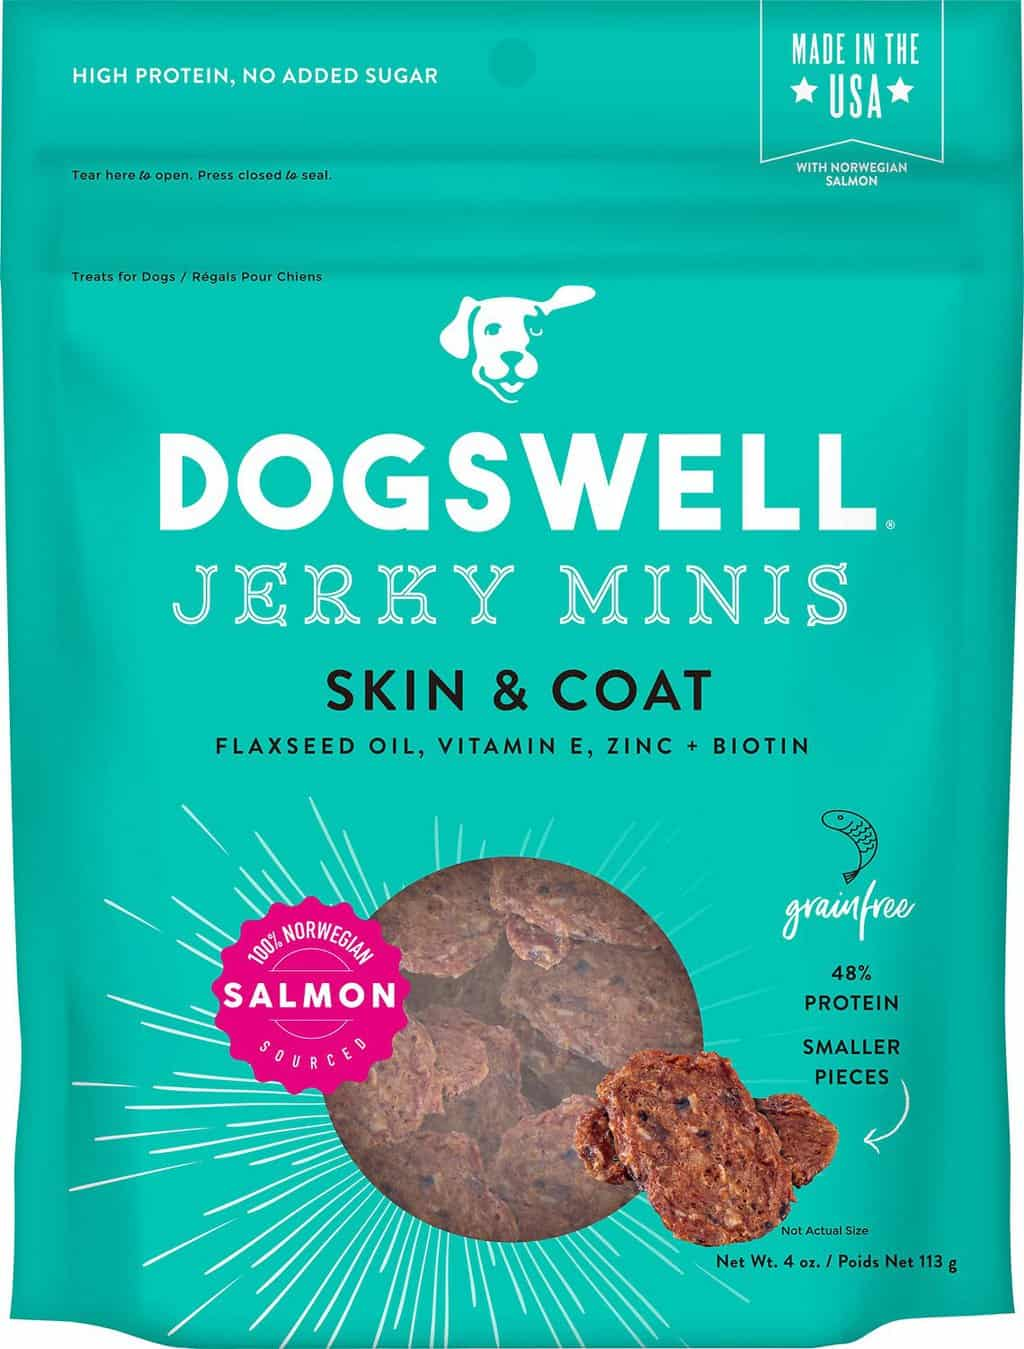 Dogswell and Nutrisca Dog Food Review, Recalls & Coupons [year] 19